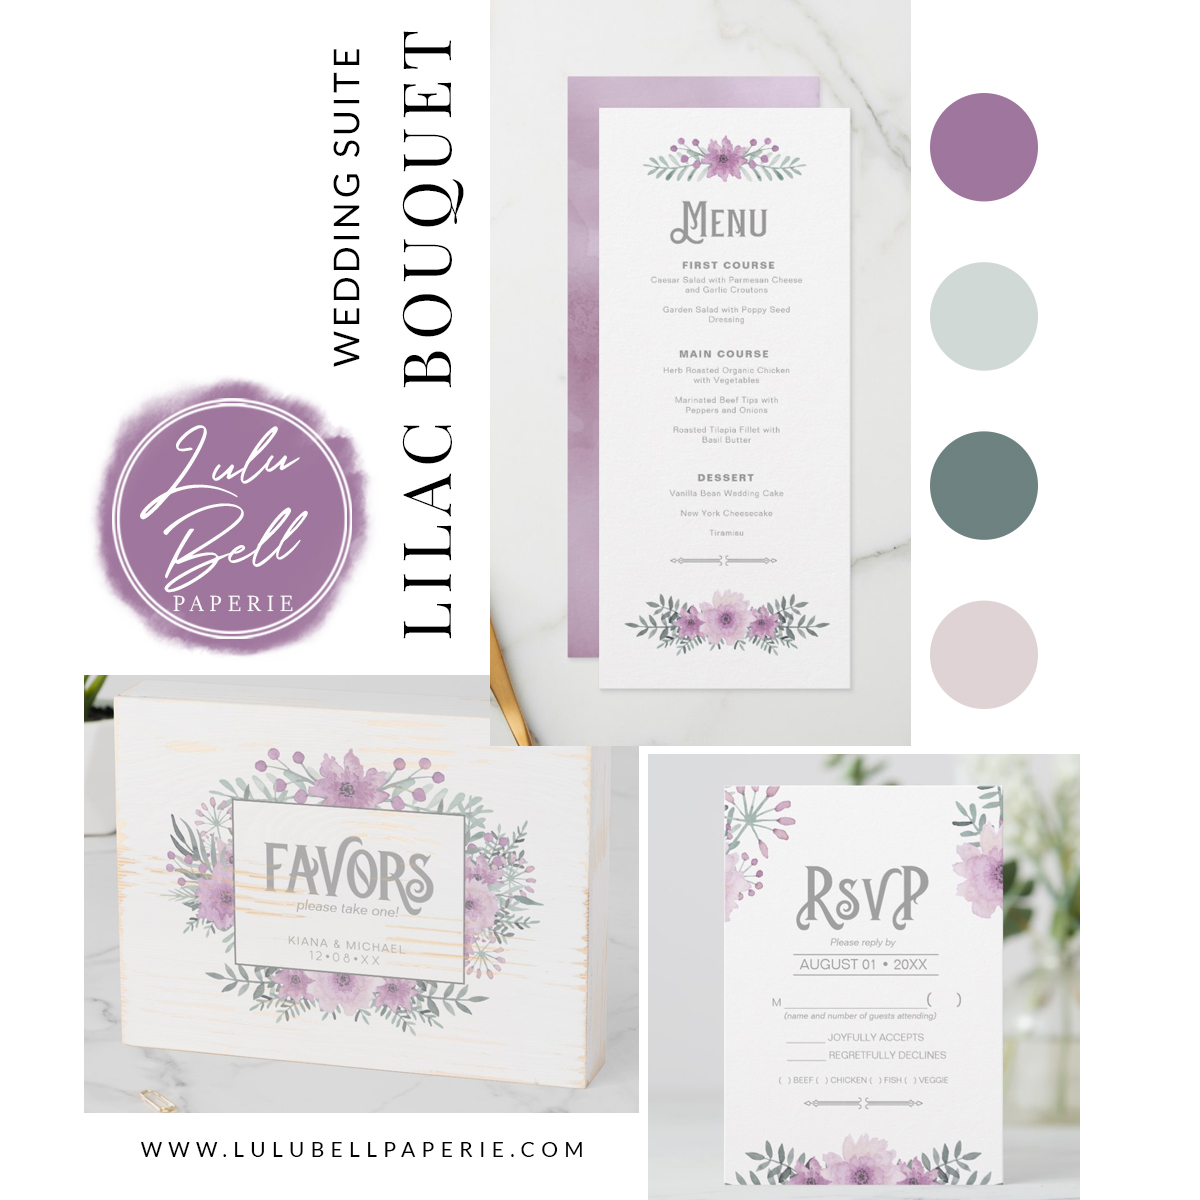 Lilac floral bouquet wedding invitation suite. Featuring wooden favor sign, dinner menus, and rsvp cards. In a purple, mint green, and blush pink color palette.